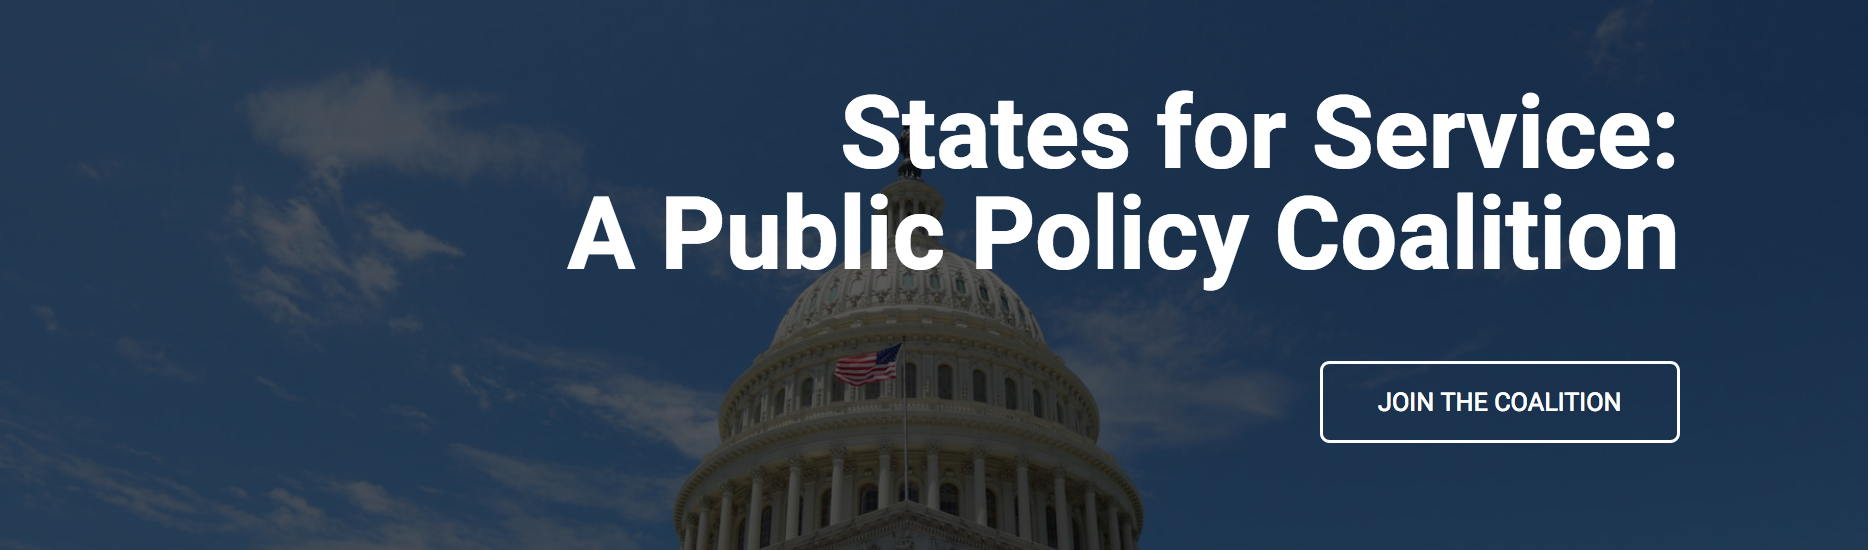 States for Service: A Public Policy Coalition